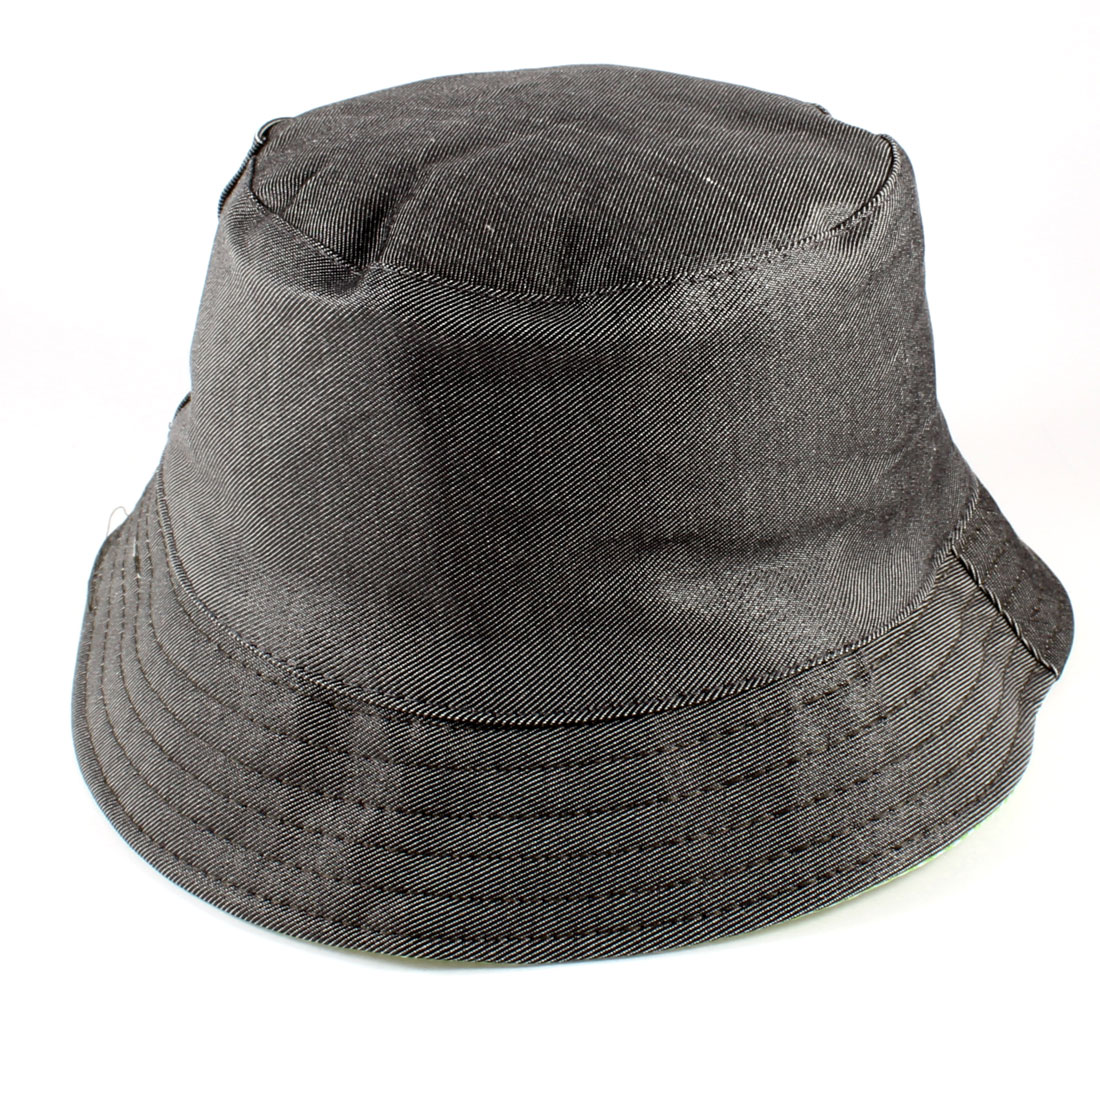 Old Man Outdoor Fishing Stitch Brim Bucket Cap Hat Gray